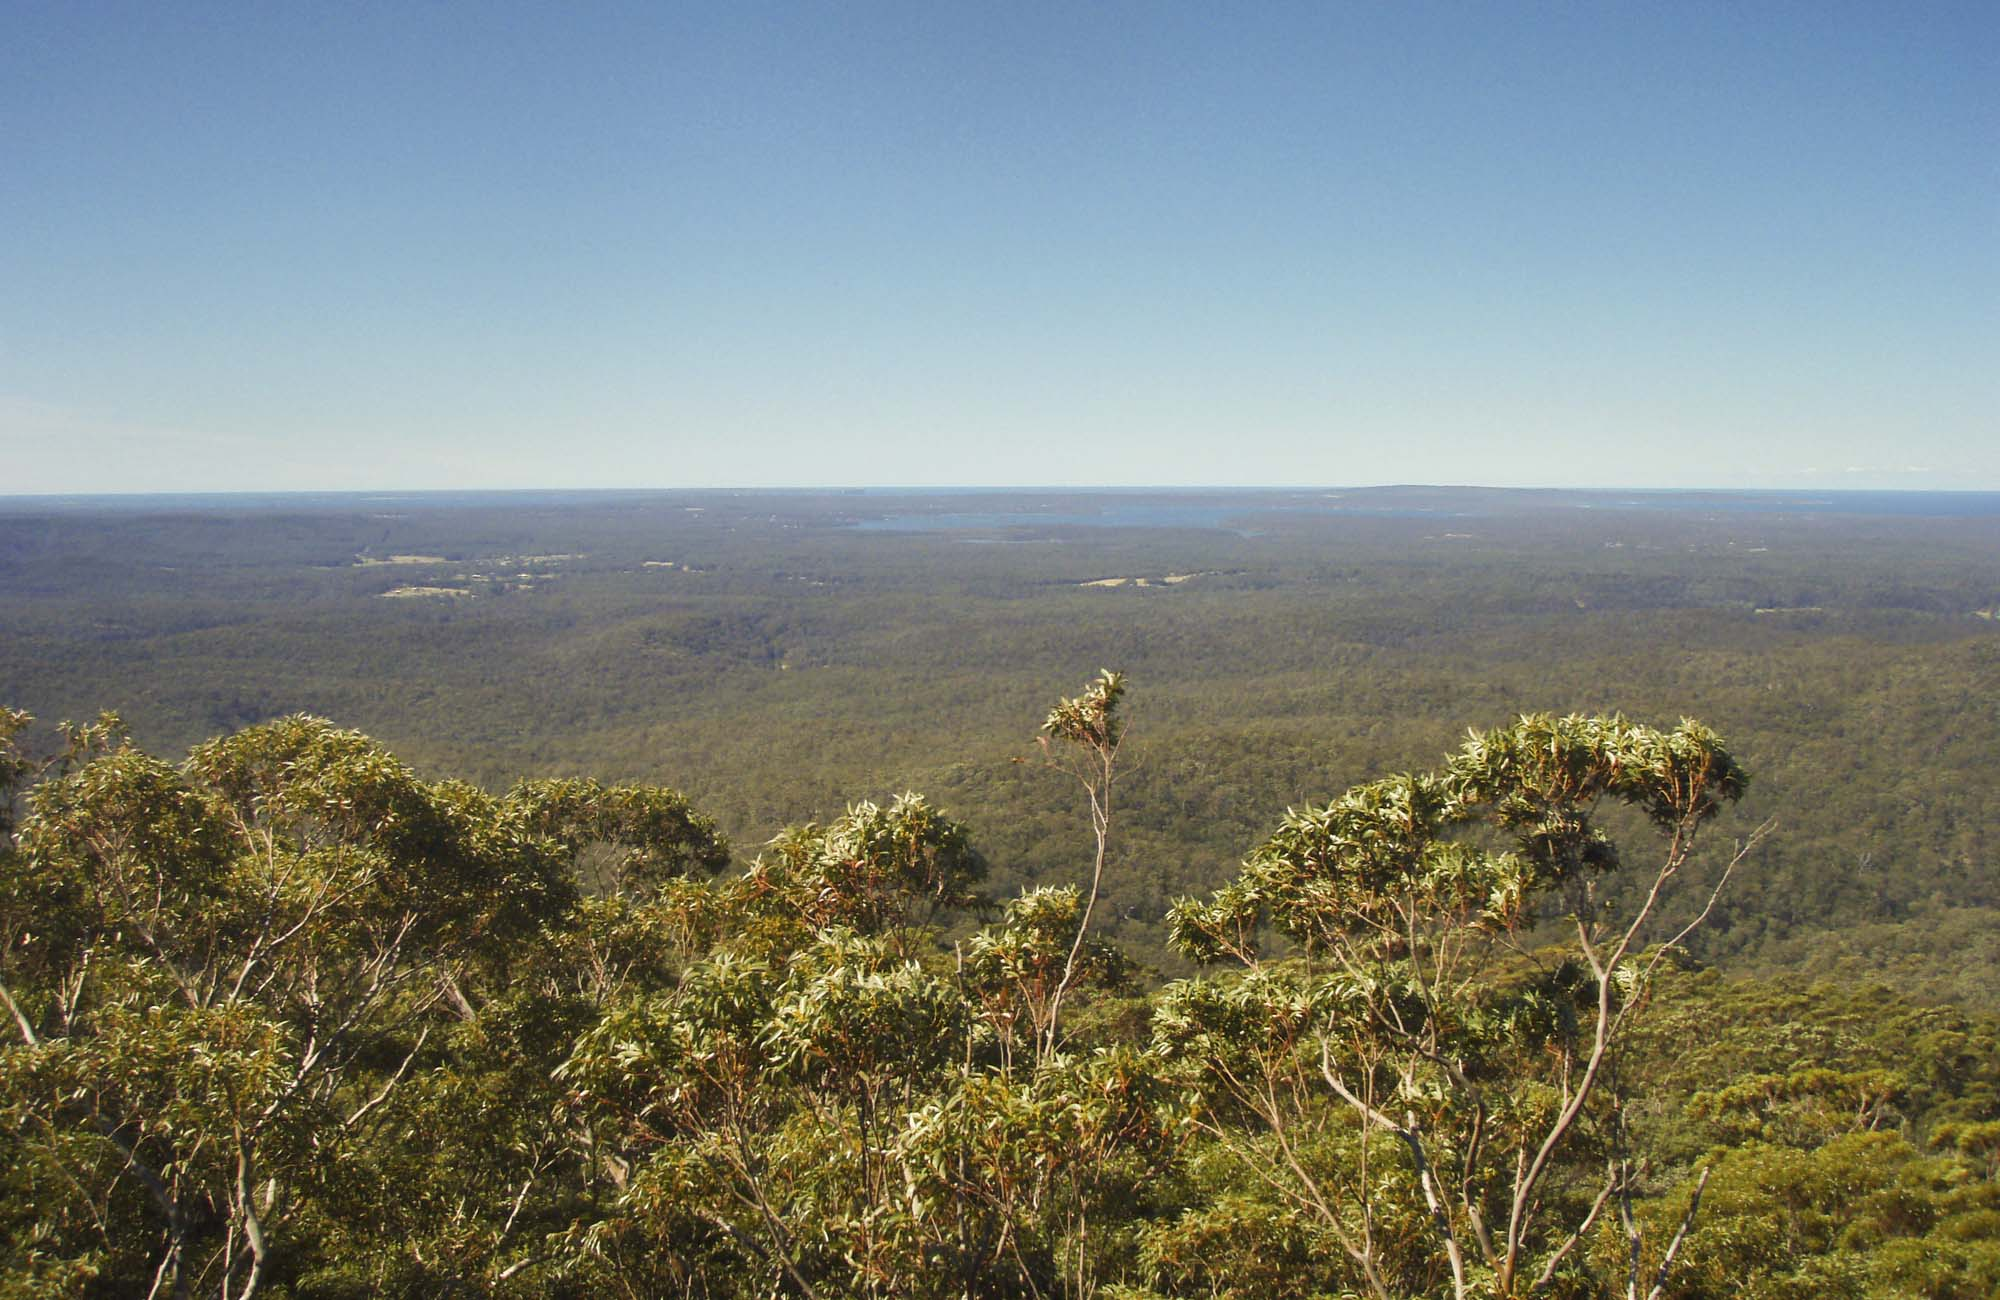 Jerrawangala Lookout, Jerrawangala National Park. Photo: R Phelps/NSW Government